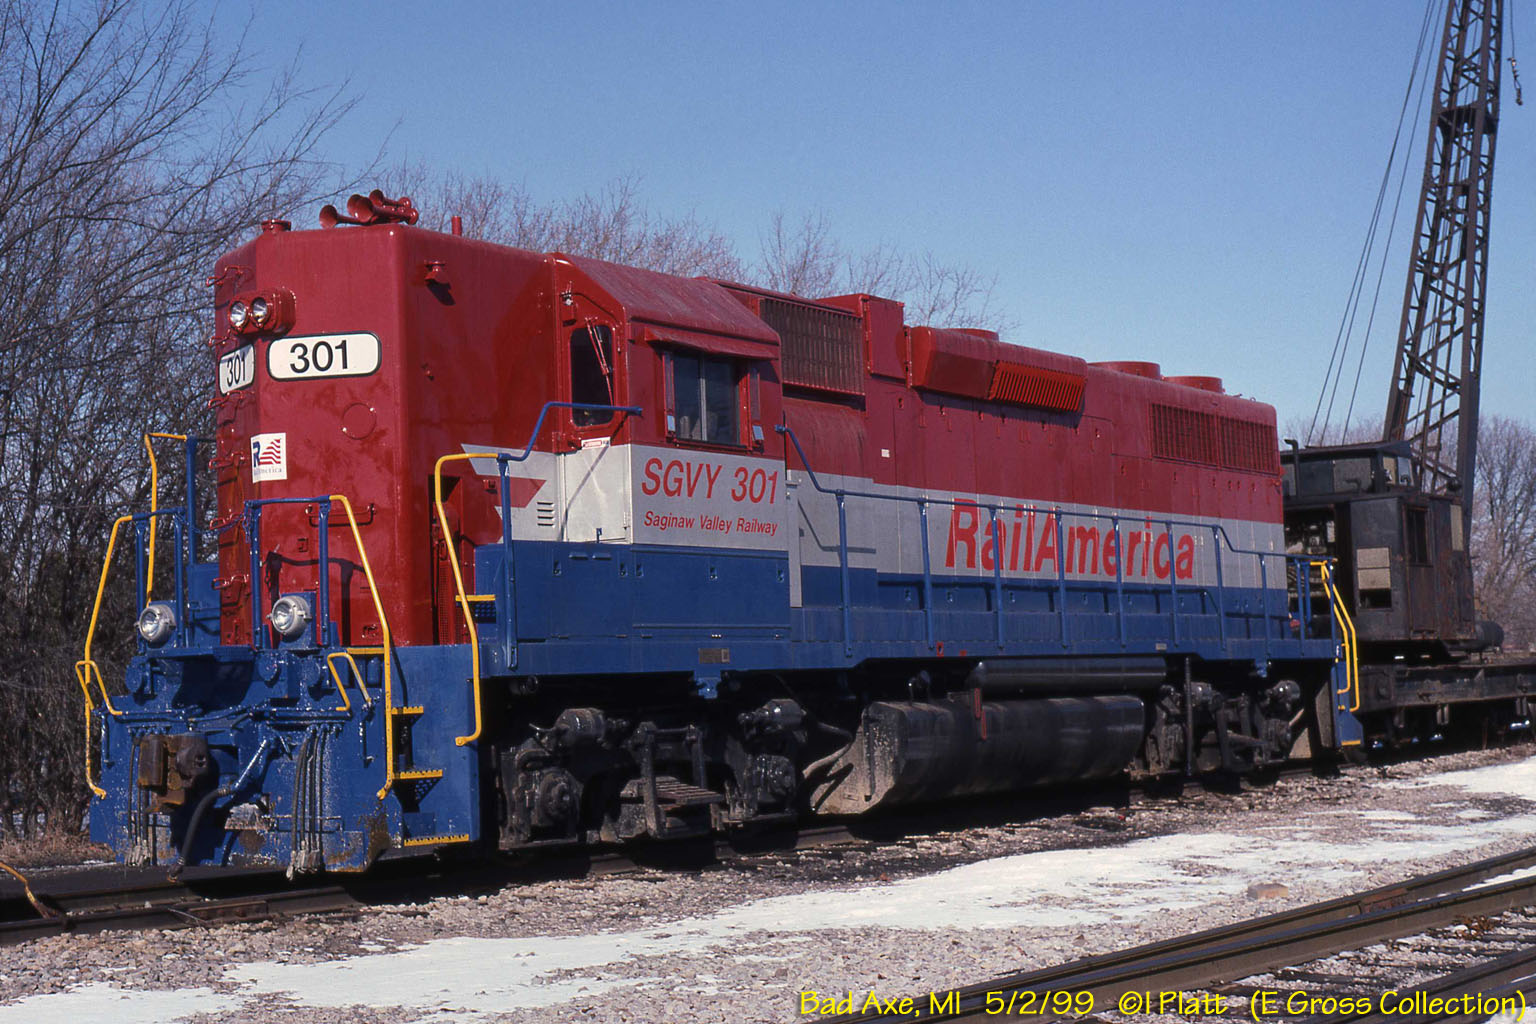 Sgvy S on Railroad Freight Car S